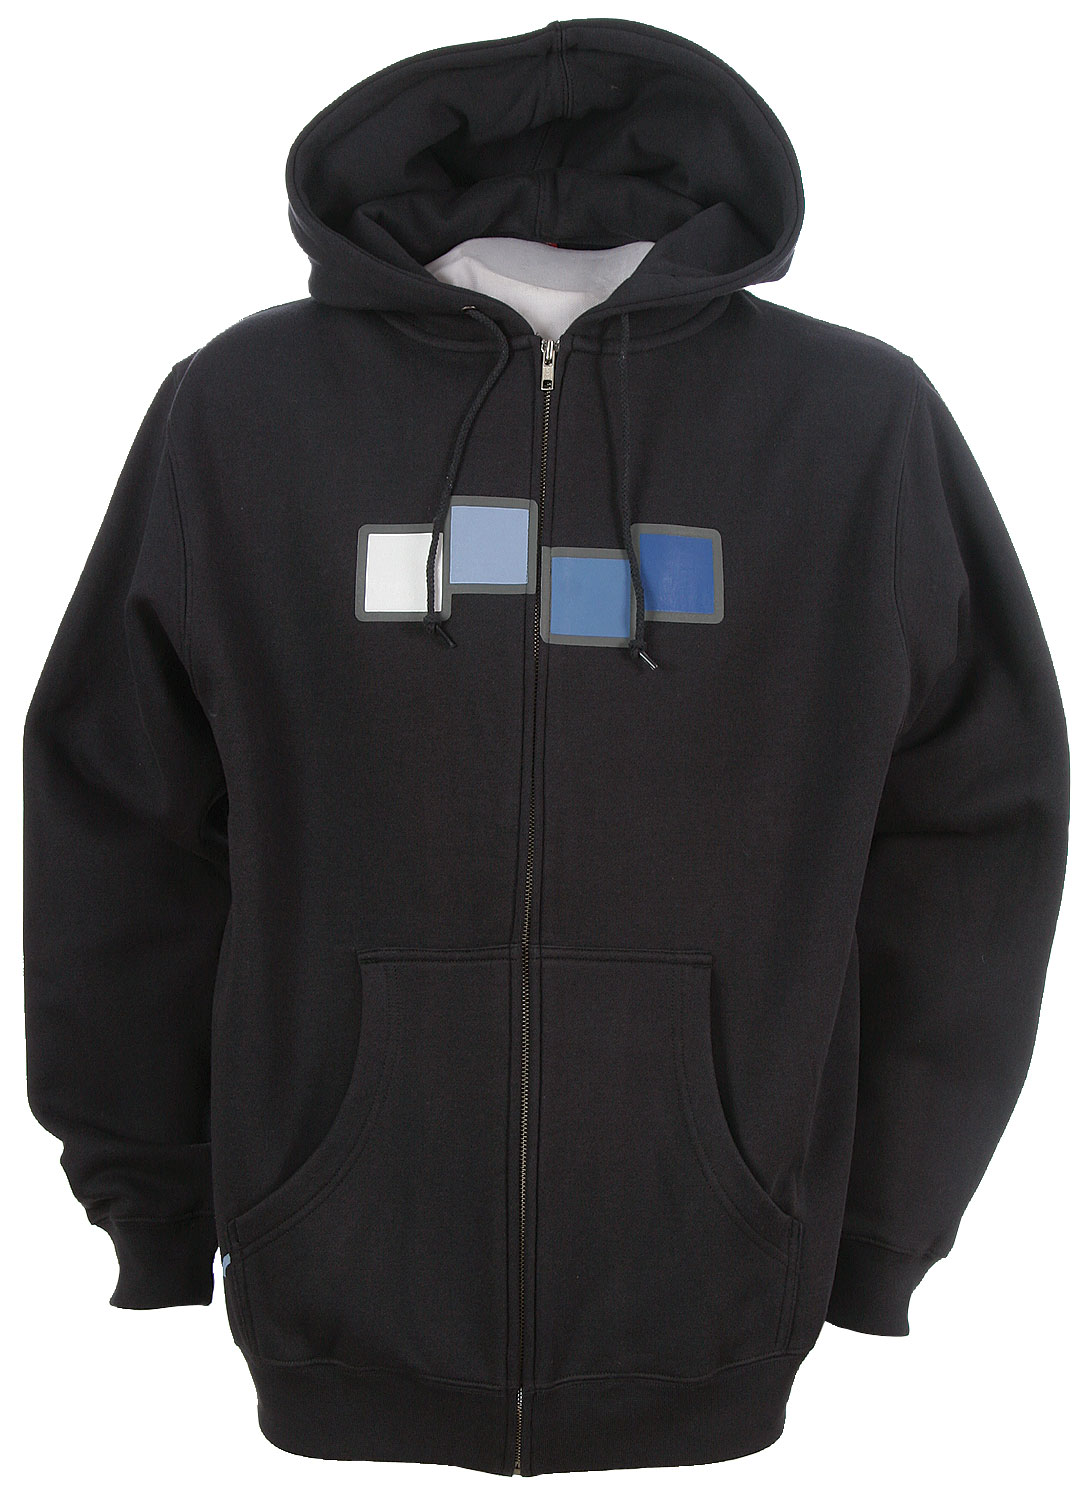 Snowboard The Foursquare Filled Zipped Icon Hooded Sweatshirt. Another great hoodie from Foursquare. 80% cotton 20% polyester 360 gm. - $24.95